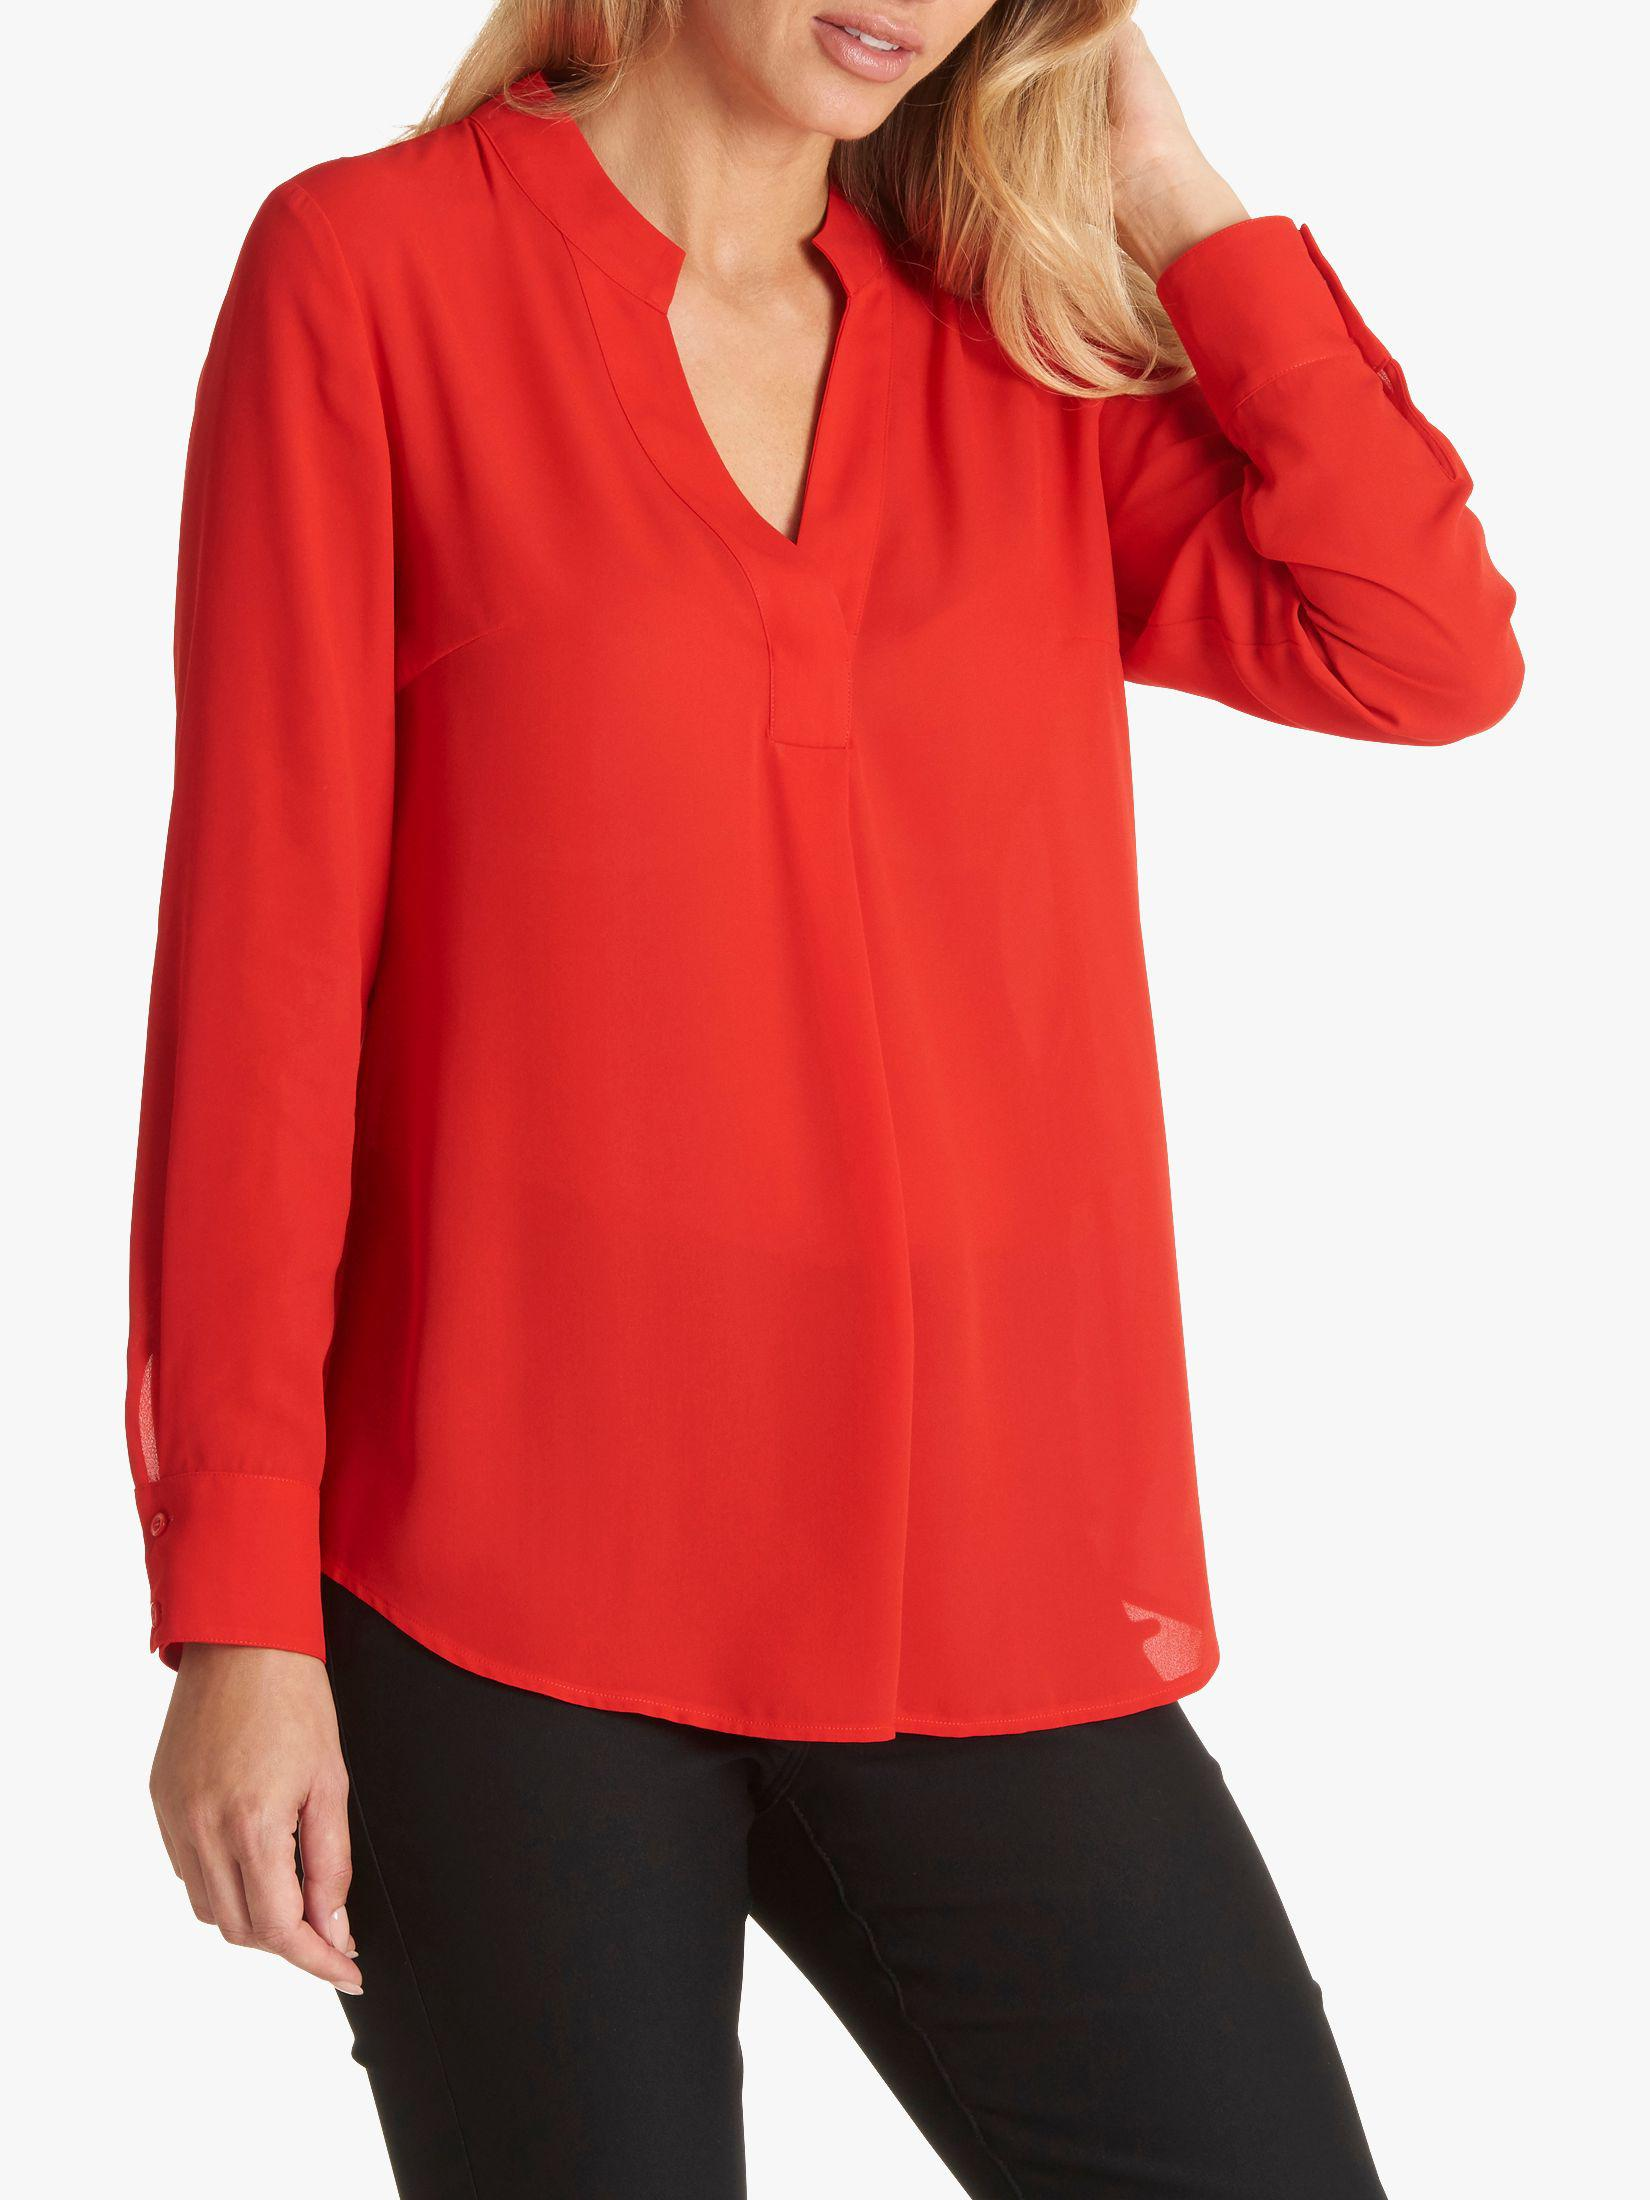 ef7f8956c3cf5 Betty Barclay V-neck Blouse in Red - Lyst